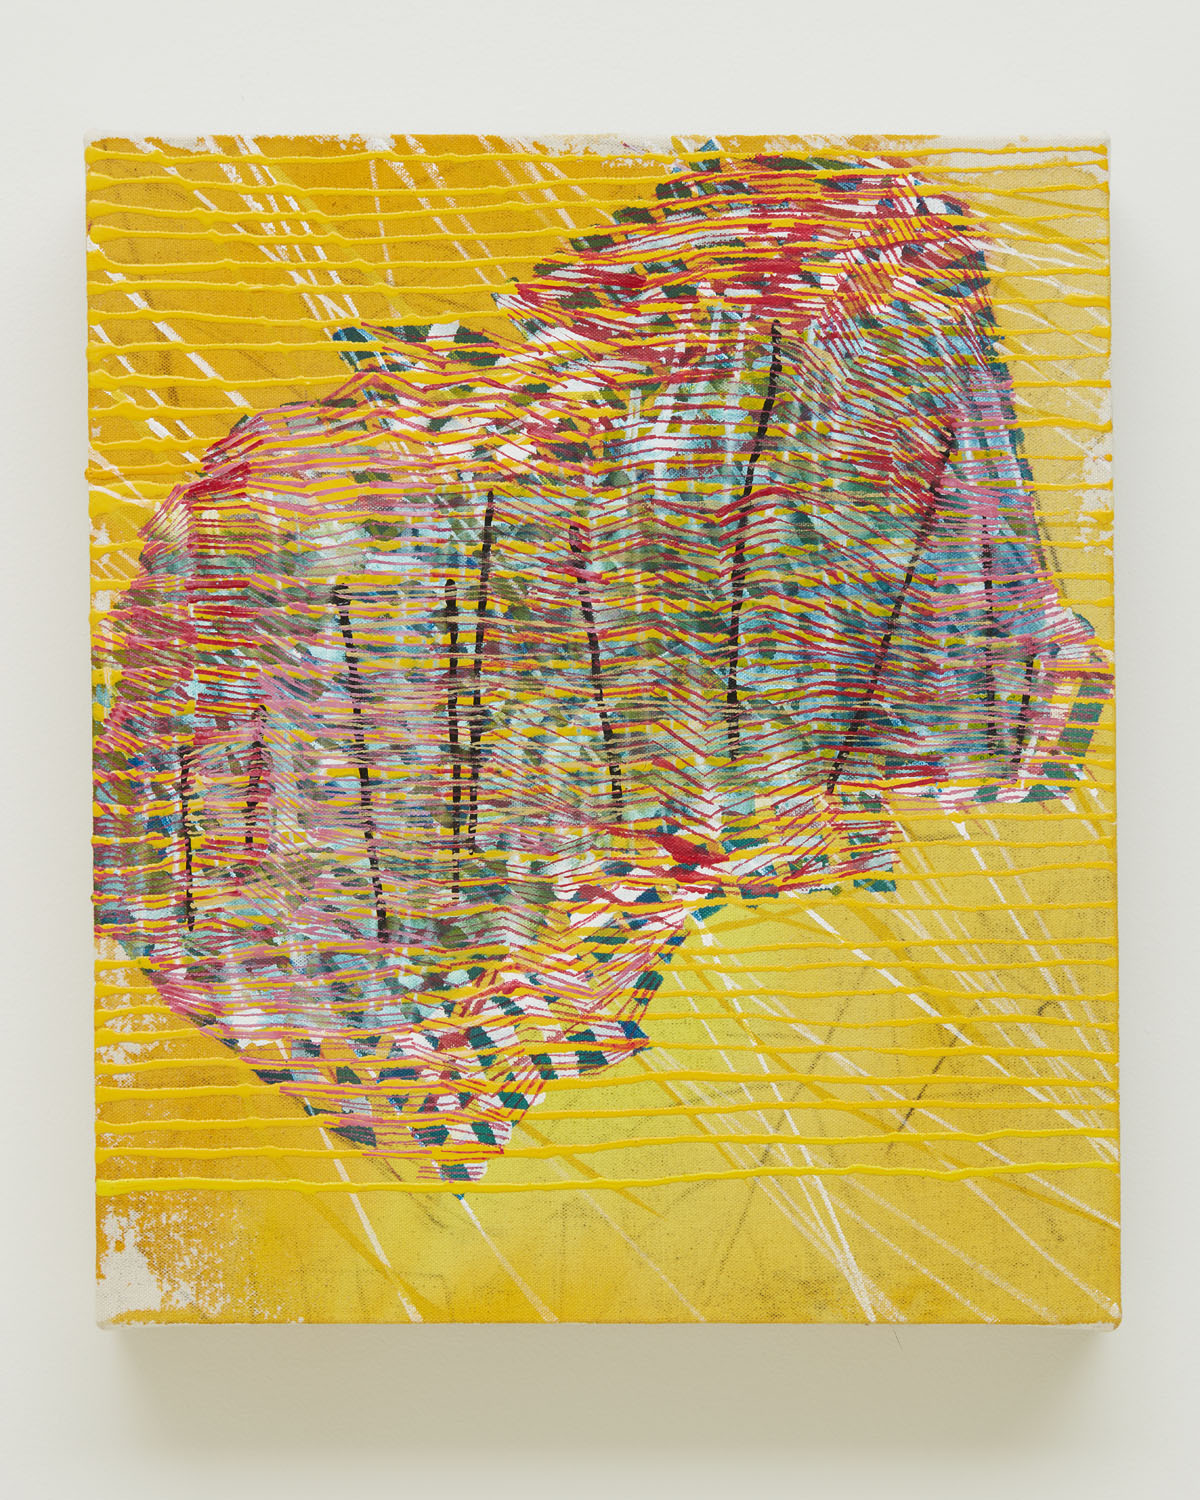 & Much More Besides, 2016, by Alyse Rosner is an abstract yellow acrylic and graphite line painting on raw canvas, with a central multi-colored form.